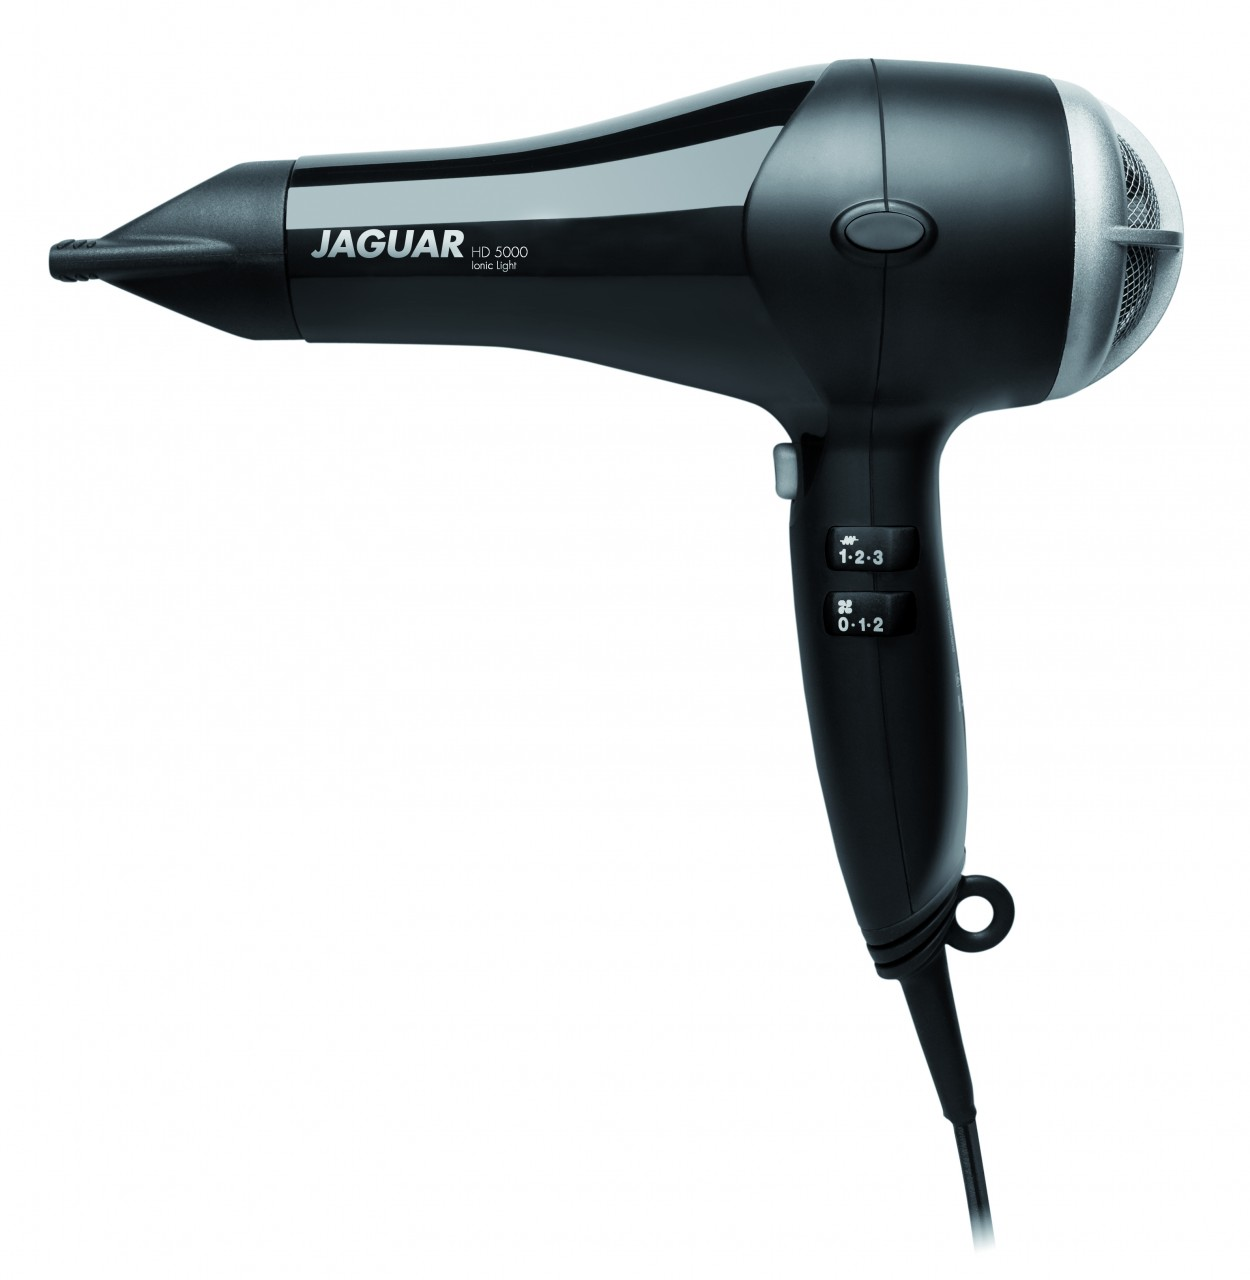 Hairdryer HD 5000 IONIC LIGHT